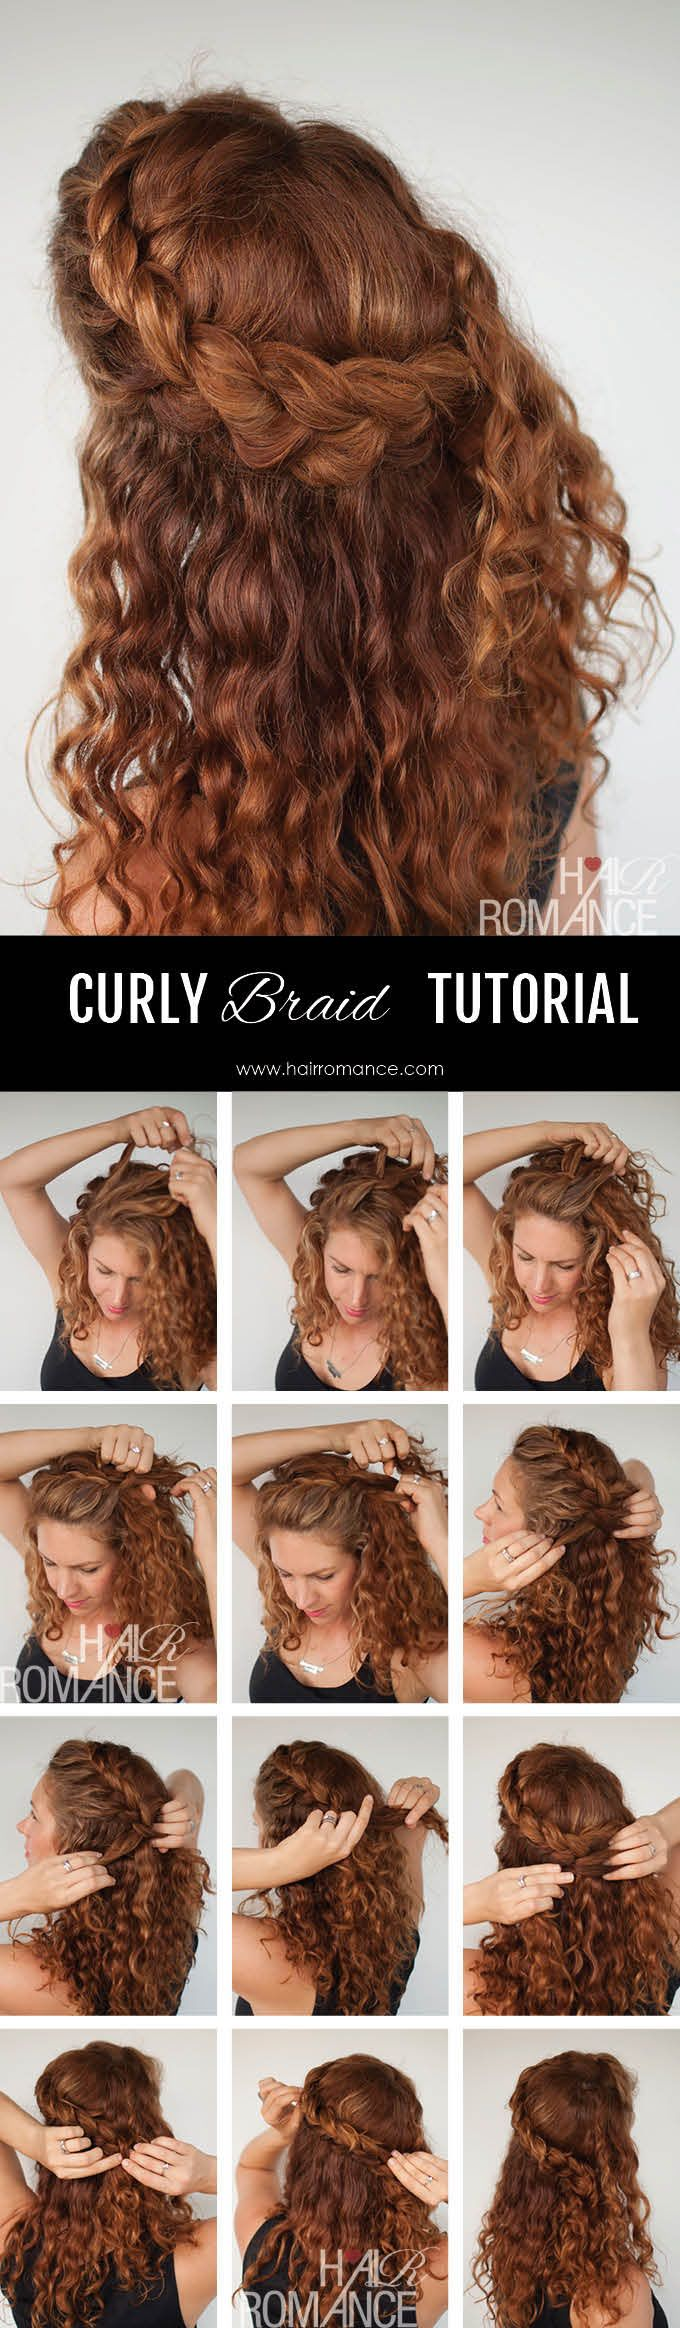 Curly hair tutorial – the half-up braid hairstyle